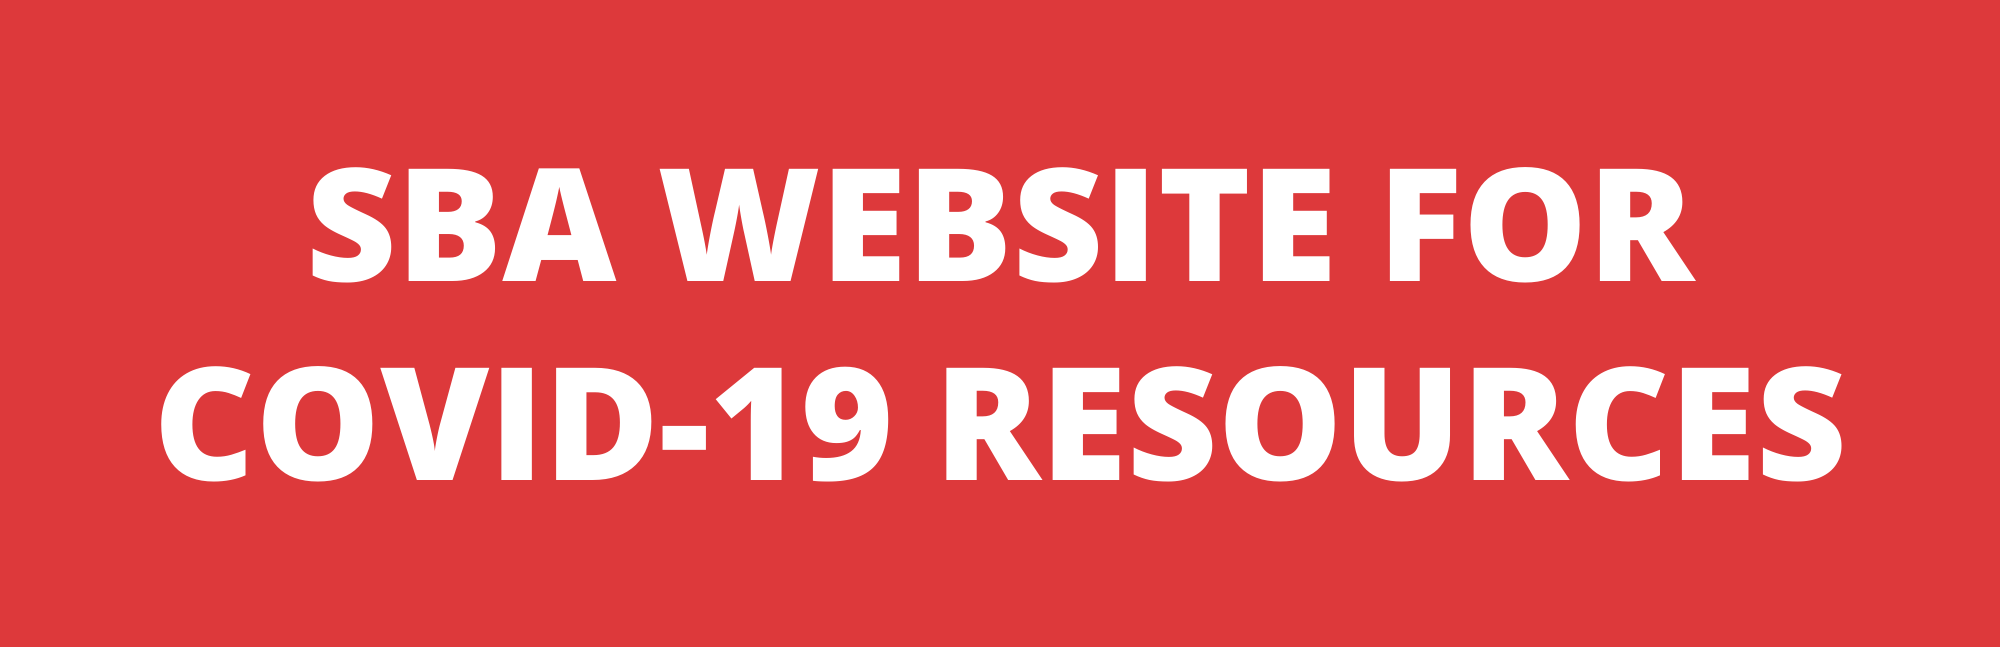 SBA Website for COVID-19 resources